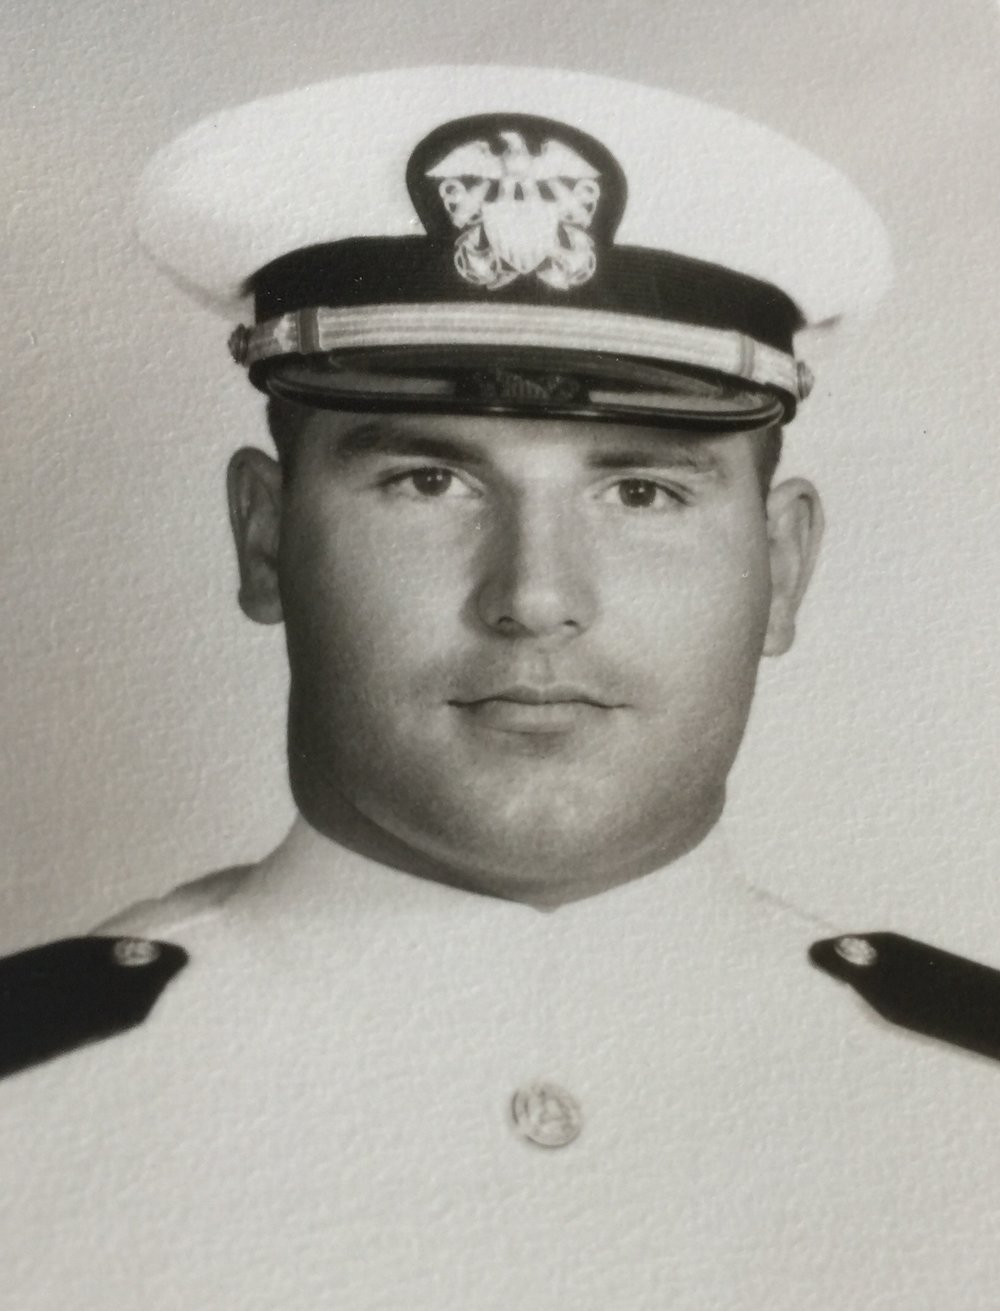 a black and white photograph of Lieutenant Mitchell Porche, Jr., a Caucasian male, in his navy uniform.  Photo Credit Unknown.